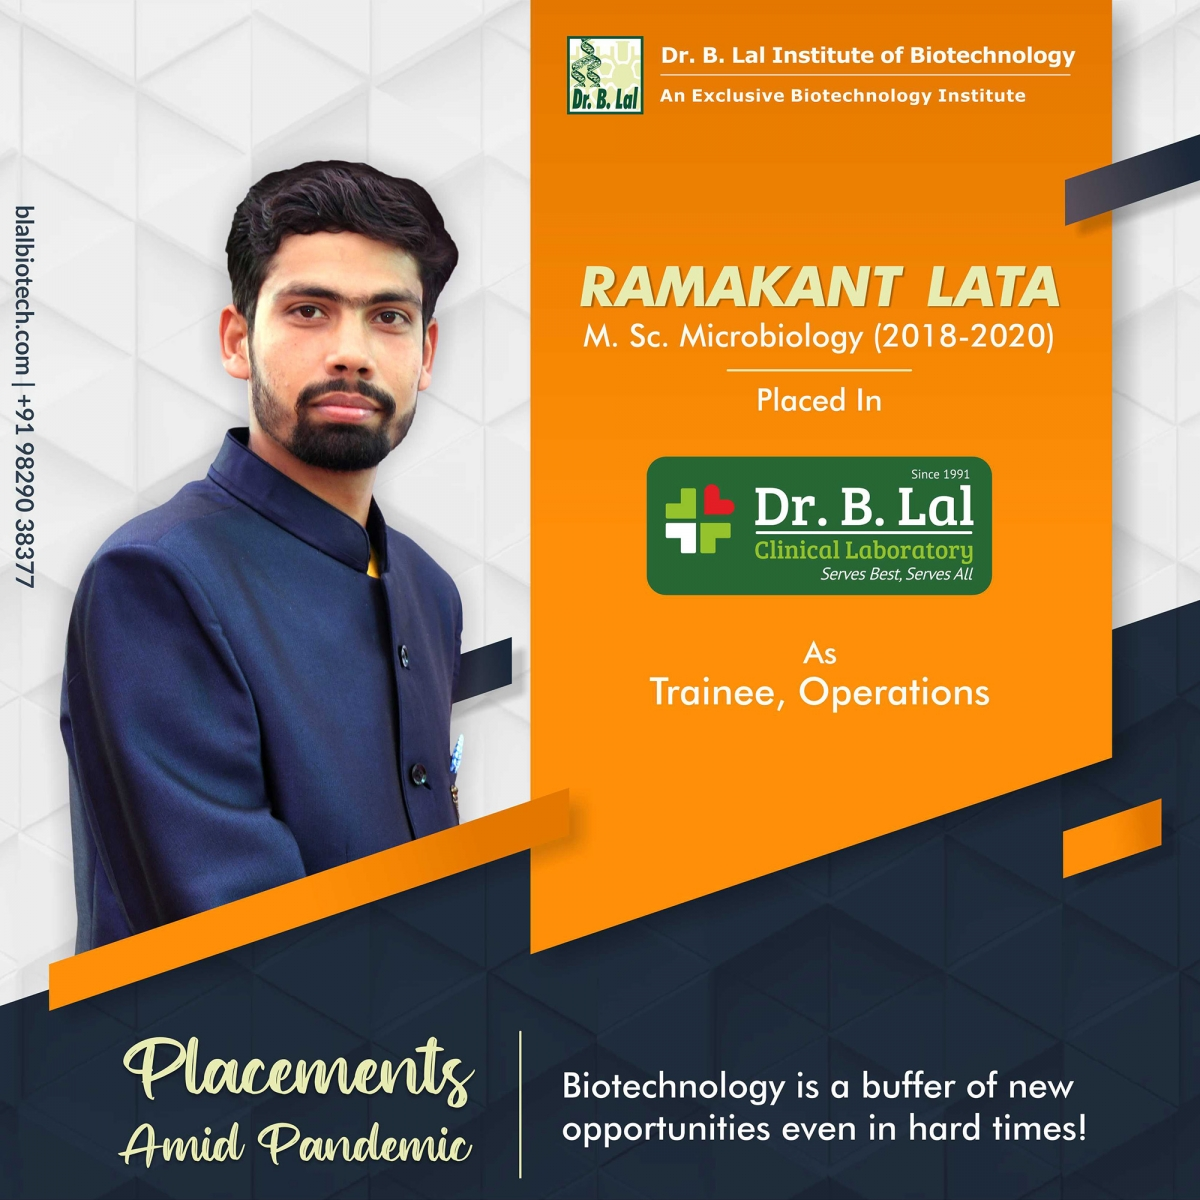 Ramakant Lata | Placements Amid Pandemic | Dr. B. Lal Institute of Biotechnology